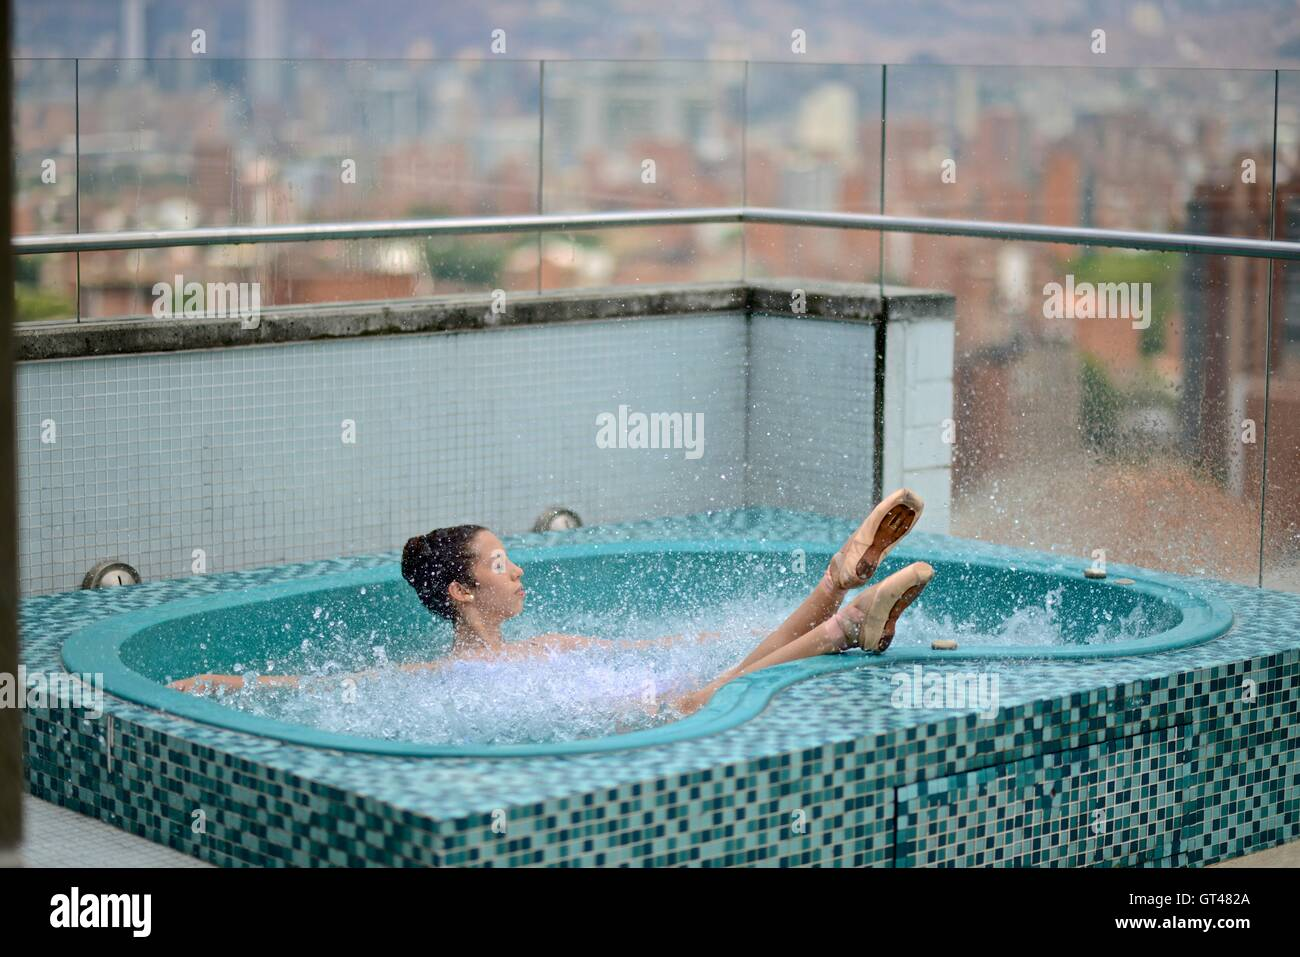 Ballerina in a rooftop jacuzzi in Medellin. - Stock Image